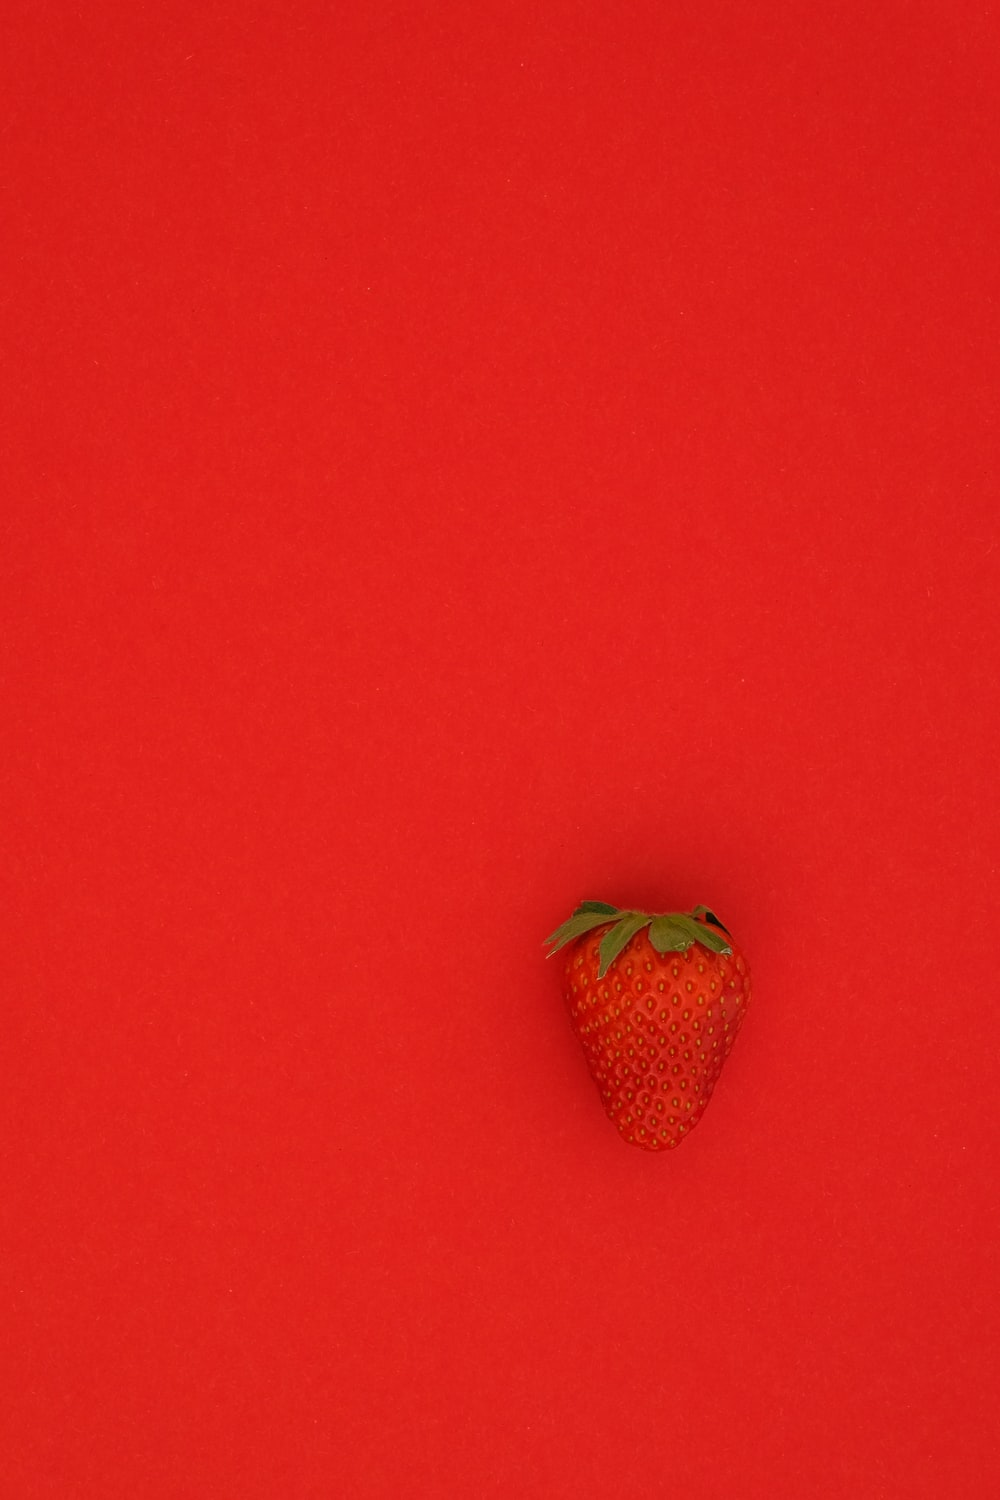 red strawberry fruit on red surface